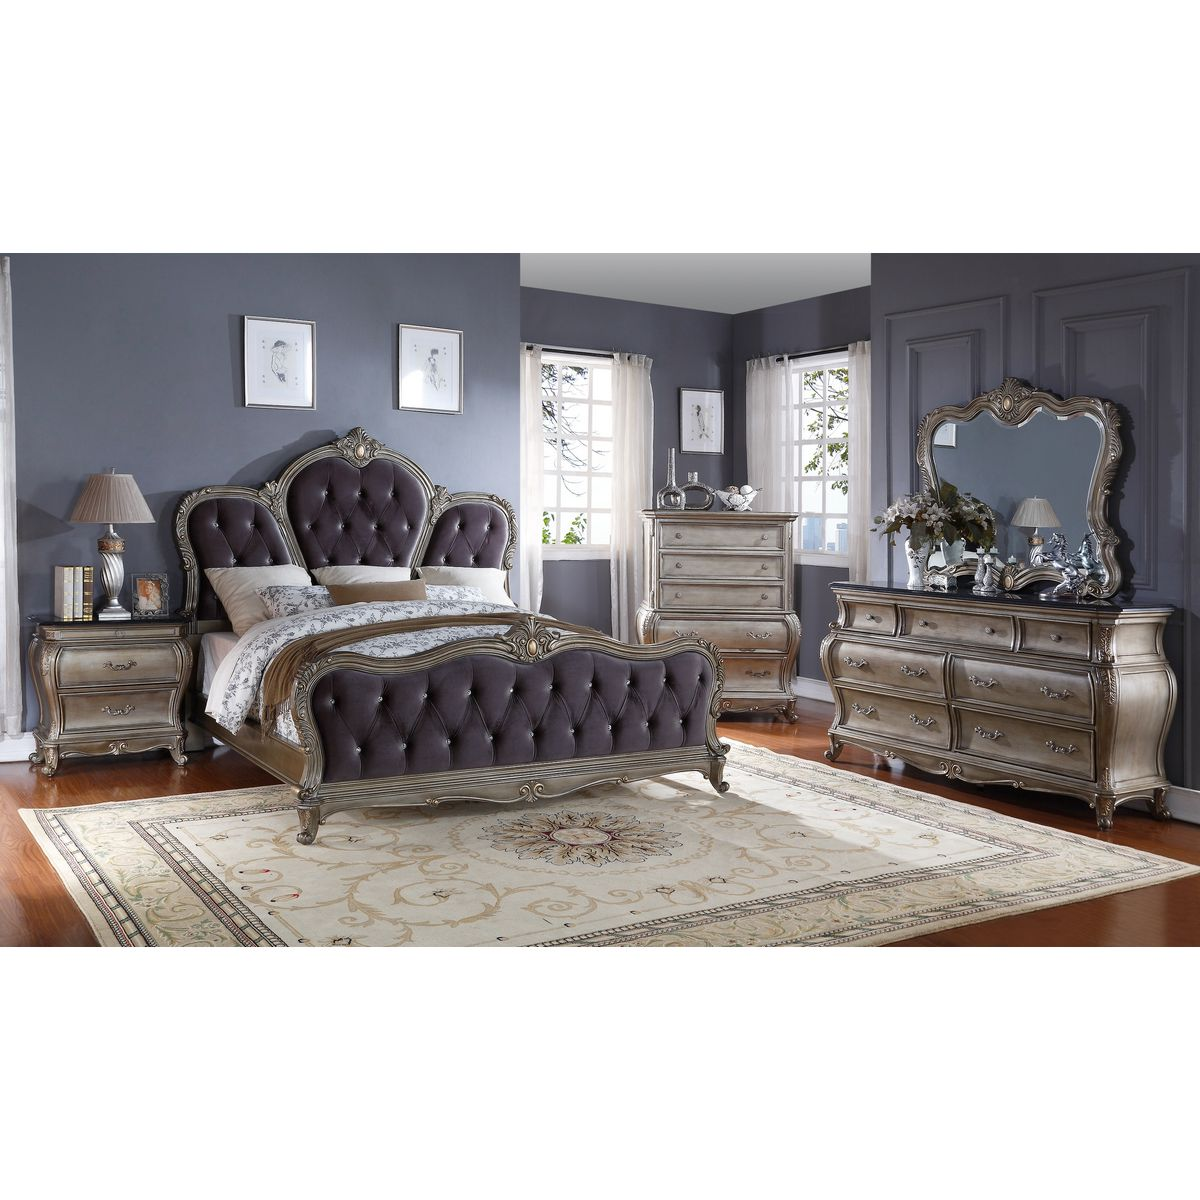 Meridian Furniture Roma Antique Silver Queen Bed w/ French Provincial  Carving & Crystal Tufted Grey Velvet - Meridian Furniture Roma-Q Roma Antique Silver Queen Bed W/ French